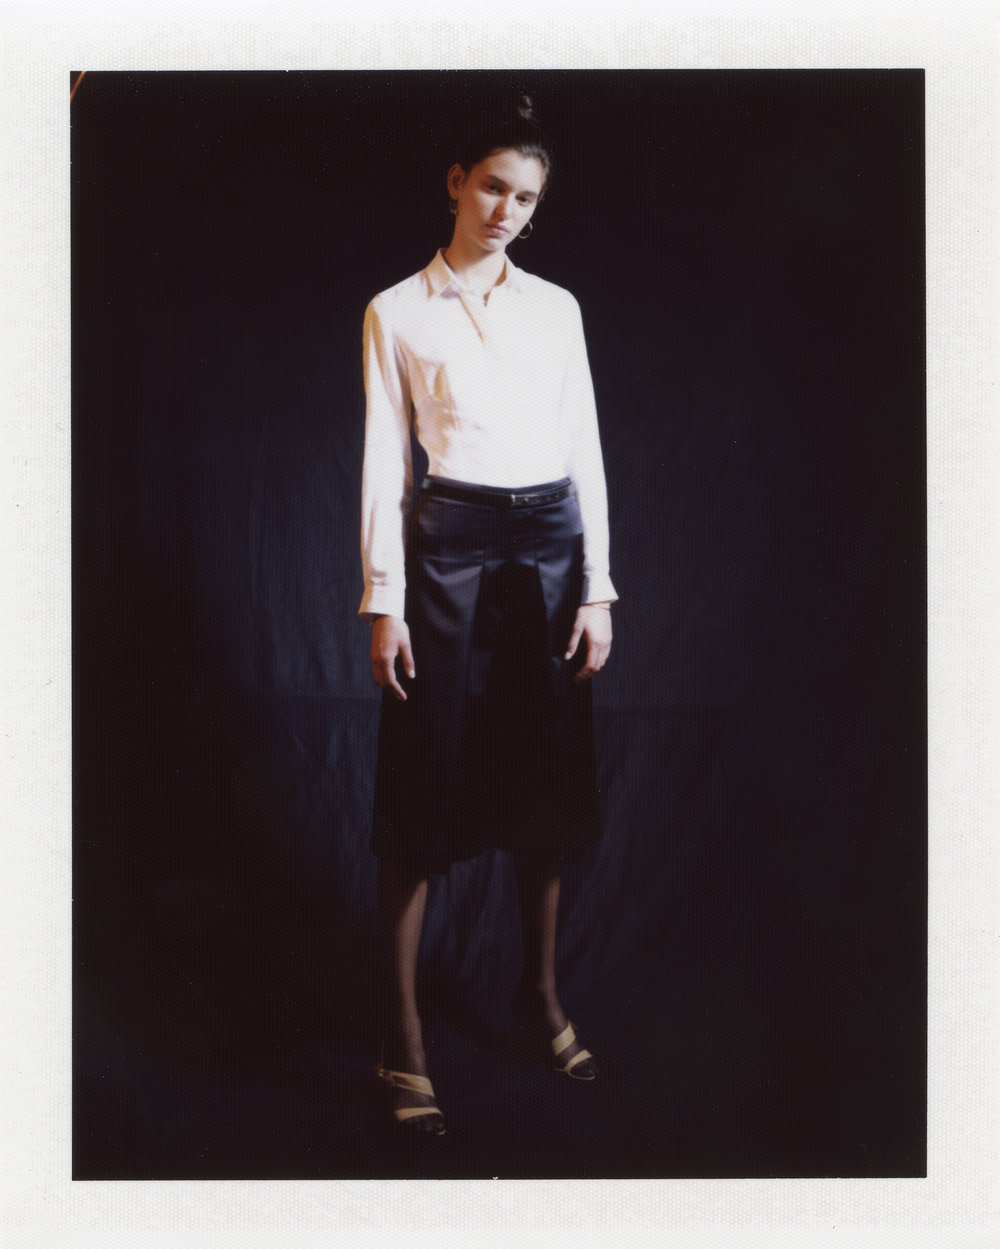 White shirt, black satin skirt. 18ct golden hoop and square earrings ATELIER VM, sandals MIU MIU at MADAME PAULINE VINTAGE, leather belt MAISON MARGIELA